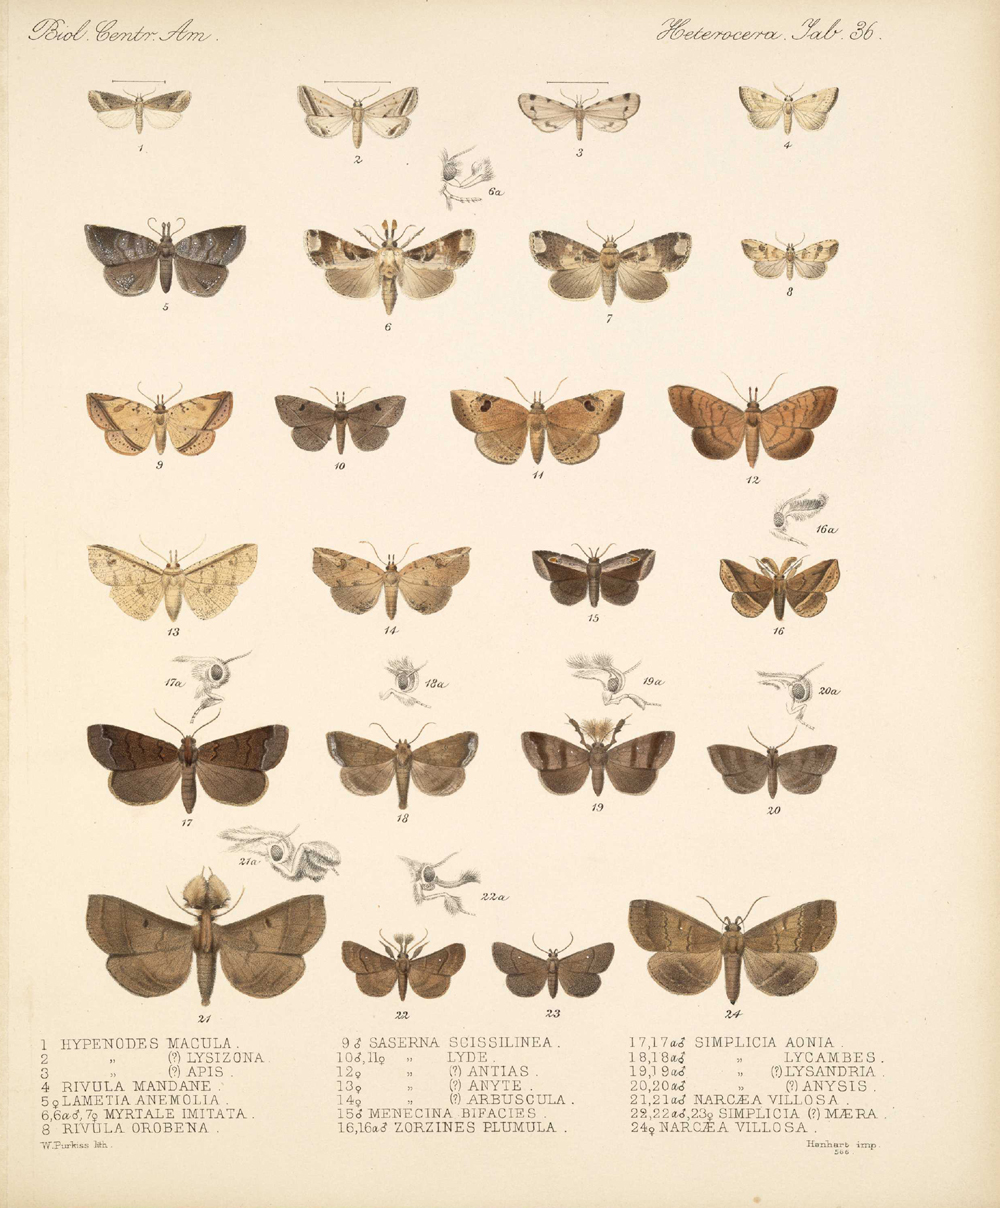 Butterflies and Moths,  Image number:bca_15_03_00_046